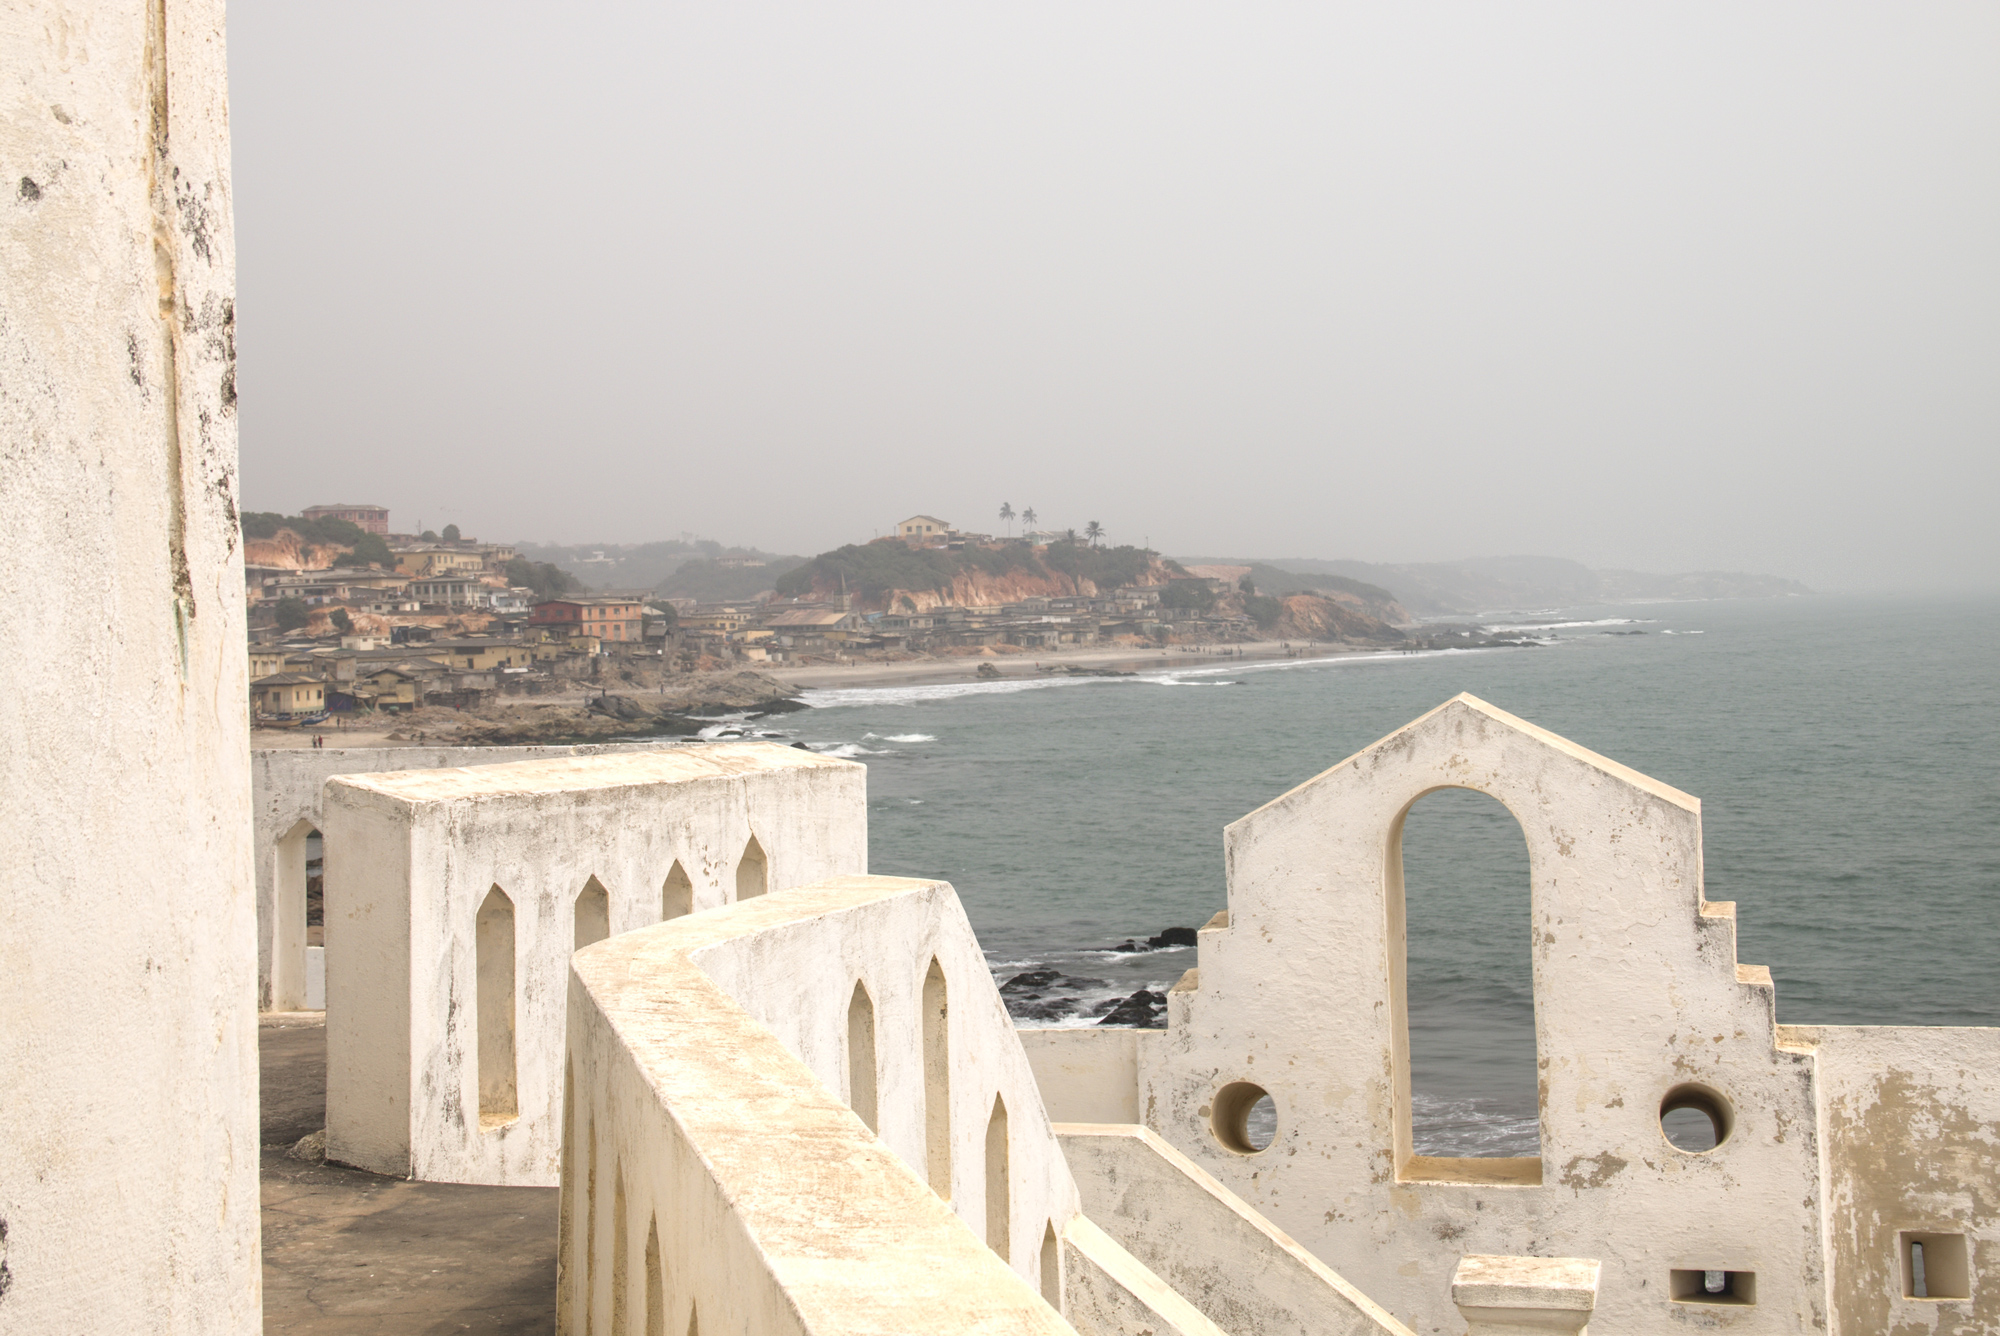 Slaves were held in dungeons within Cape Coast Castle before being forced to walk a plank onto ships that would take them to the Americas. It is one of more than 50 such castles that were once on the West African Coast.